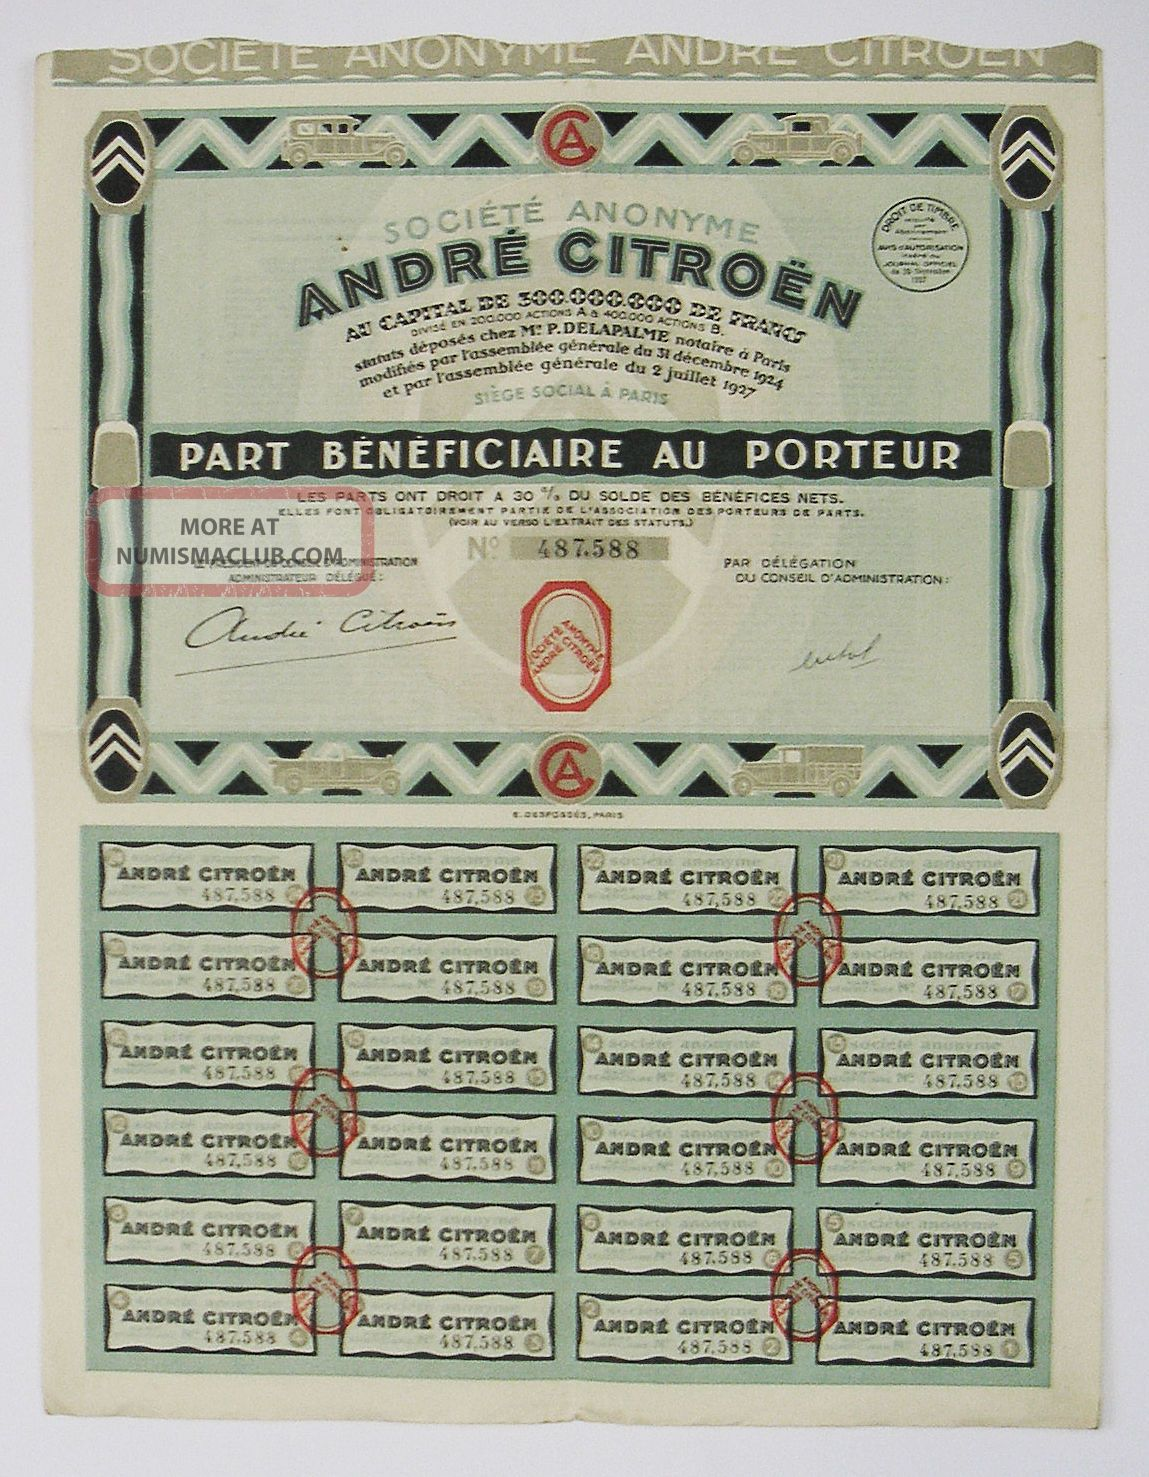 France - André Citroen - Part Bénéficiaire 1927 Transportation photo